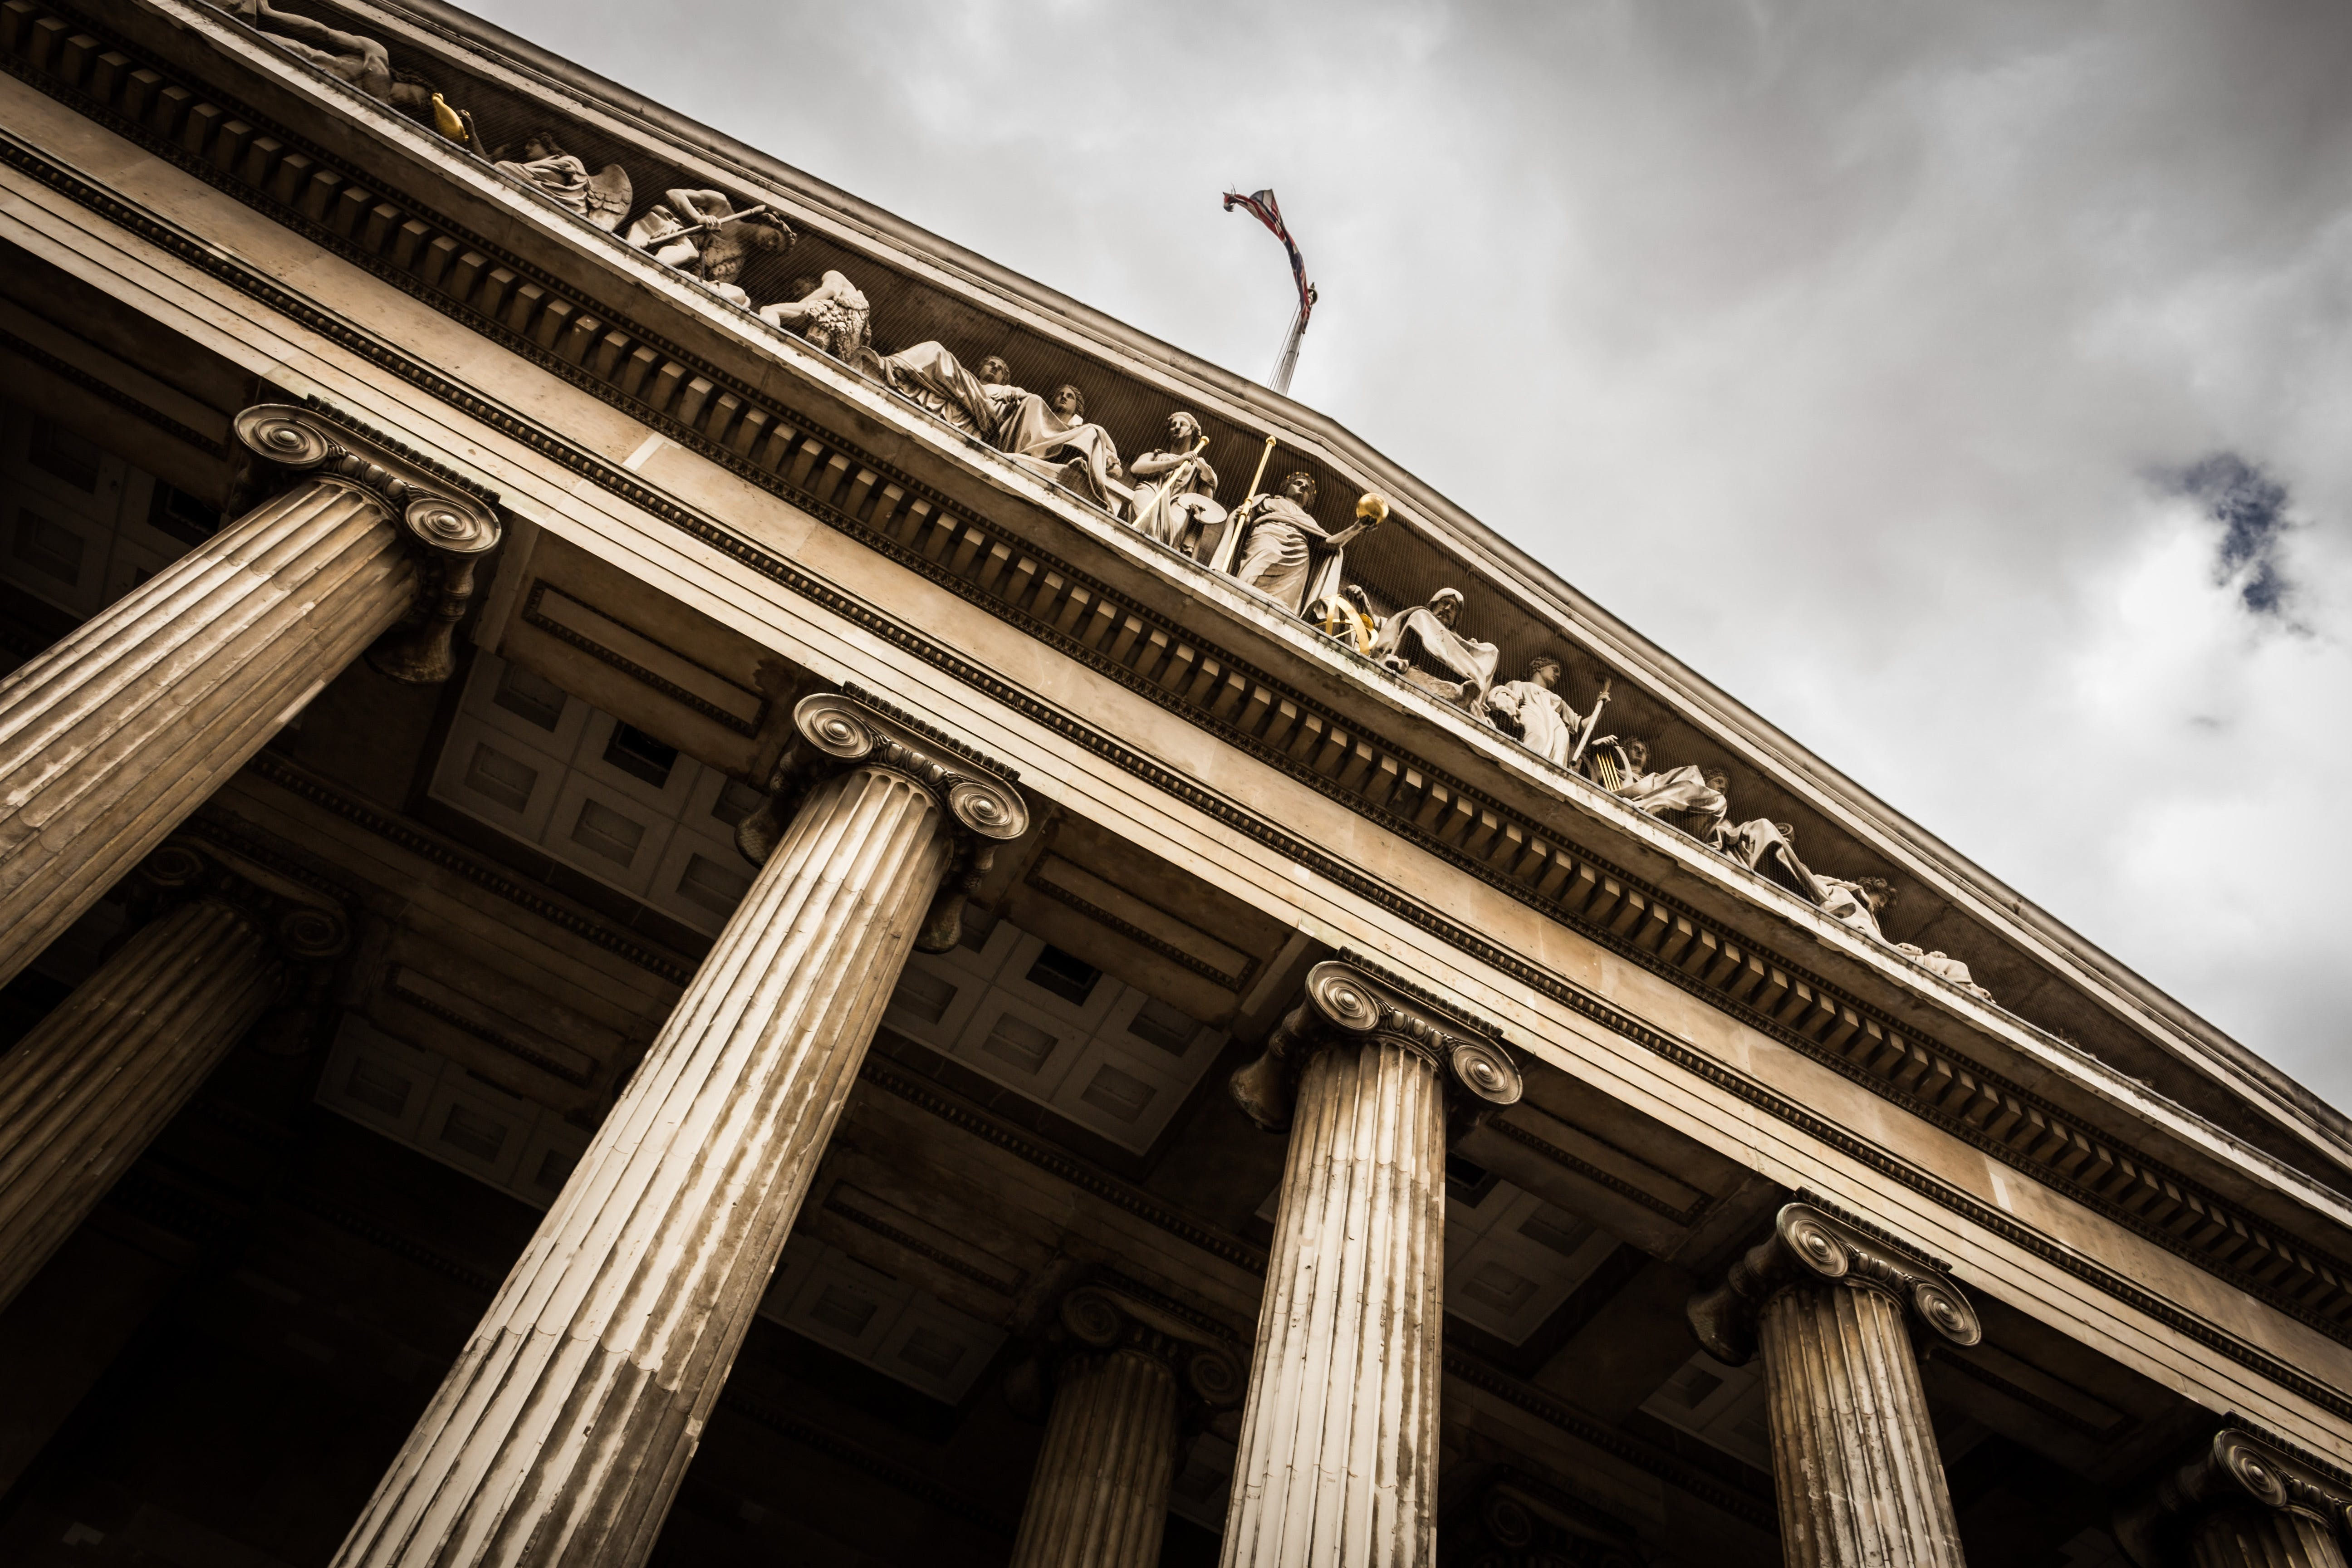 Best European Law Schools You Should Keep Your Eyes on in